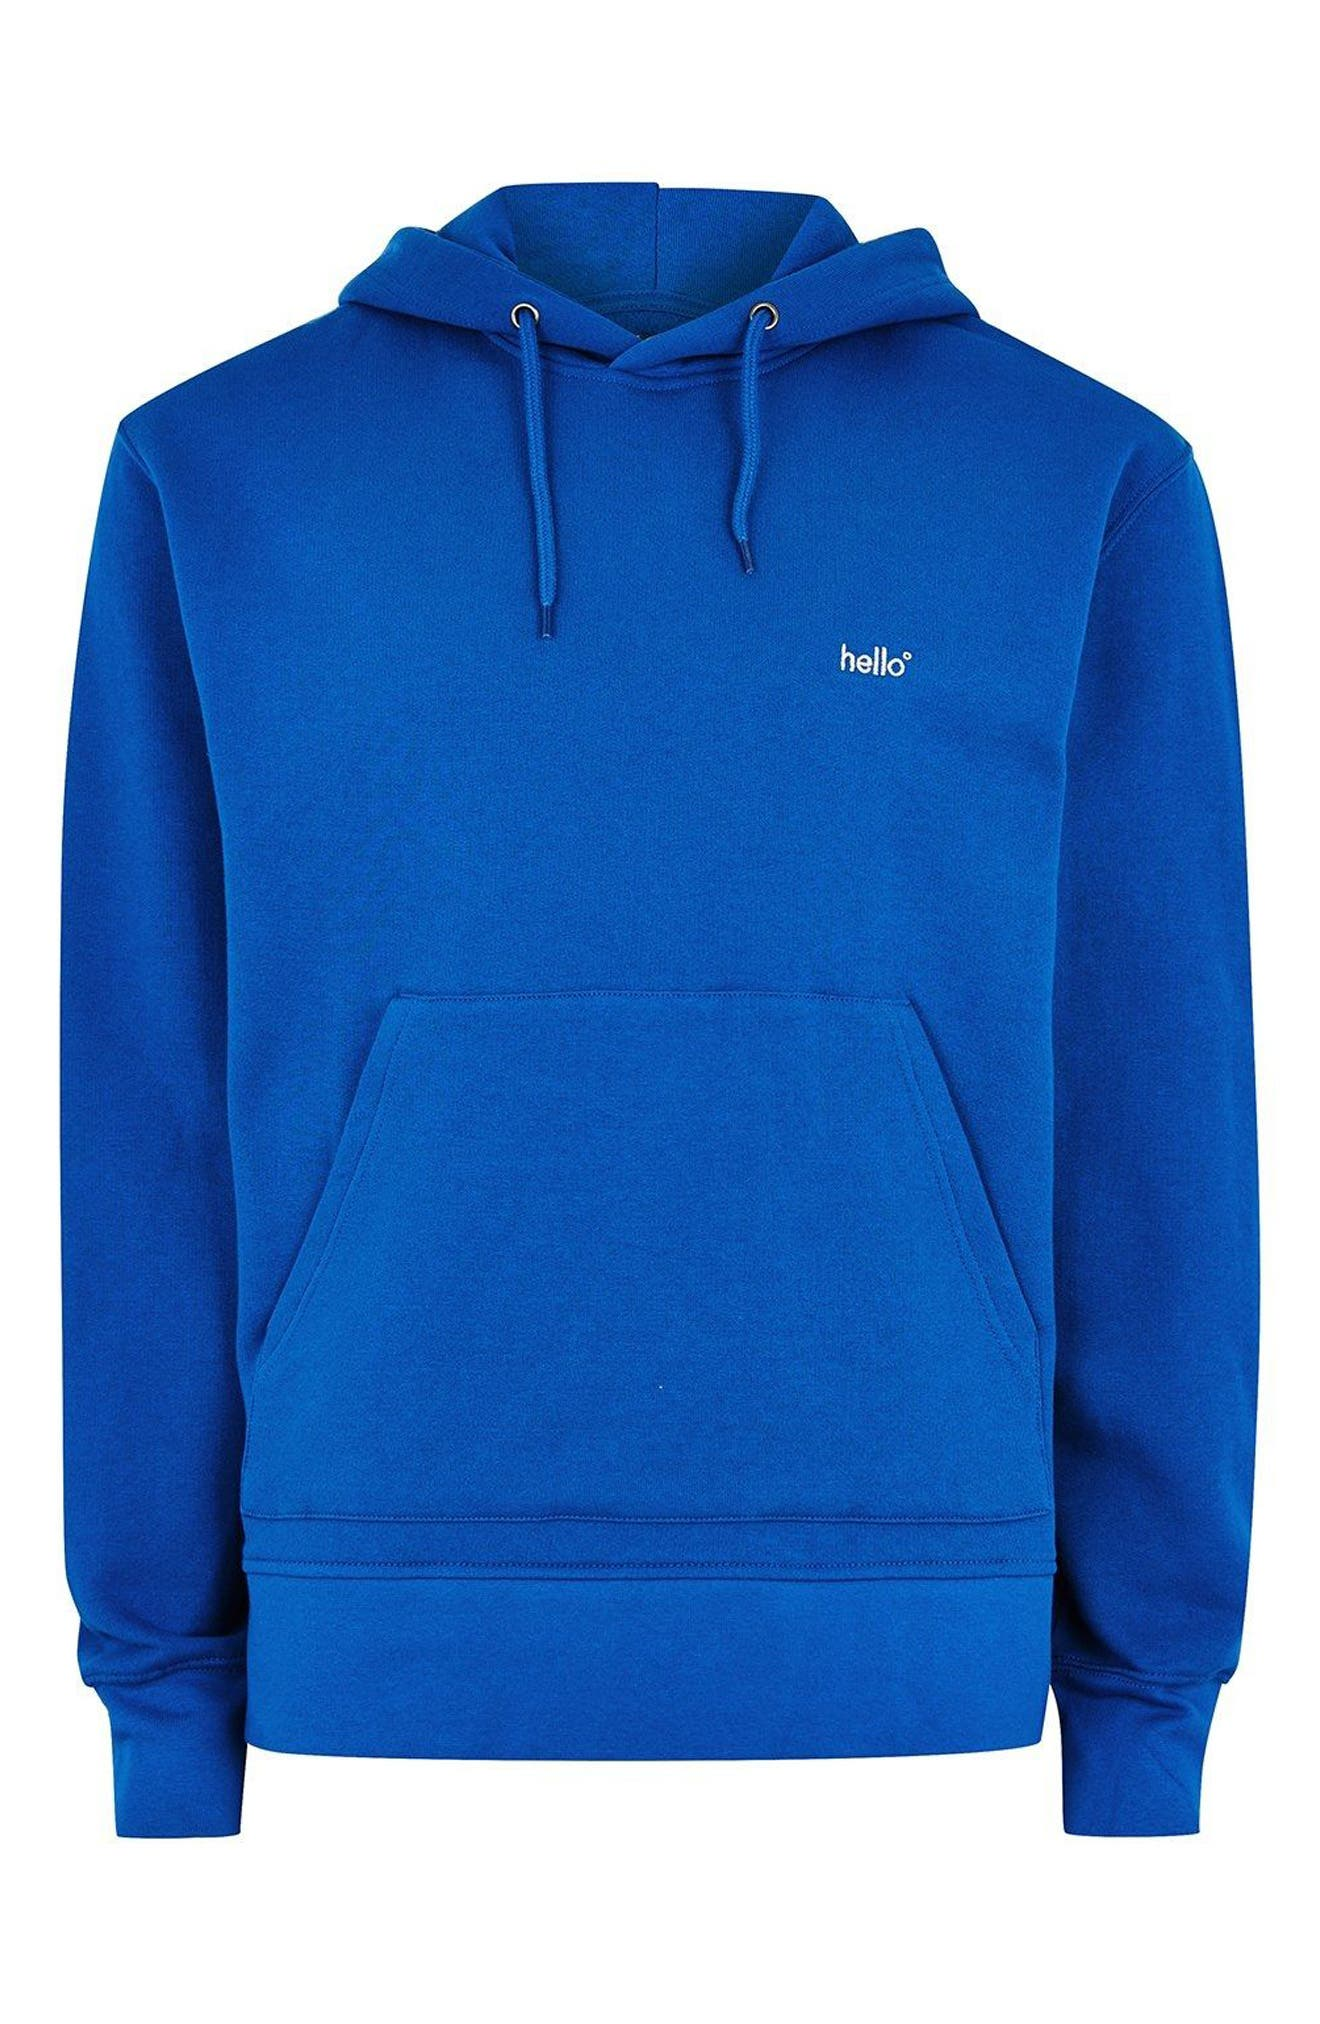 Classic Fit Tristan Hello Embroidered Hoodie,                             Alternate thumbnail 4, color,                             Blue Multi